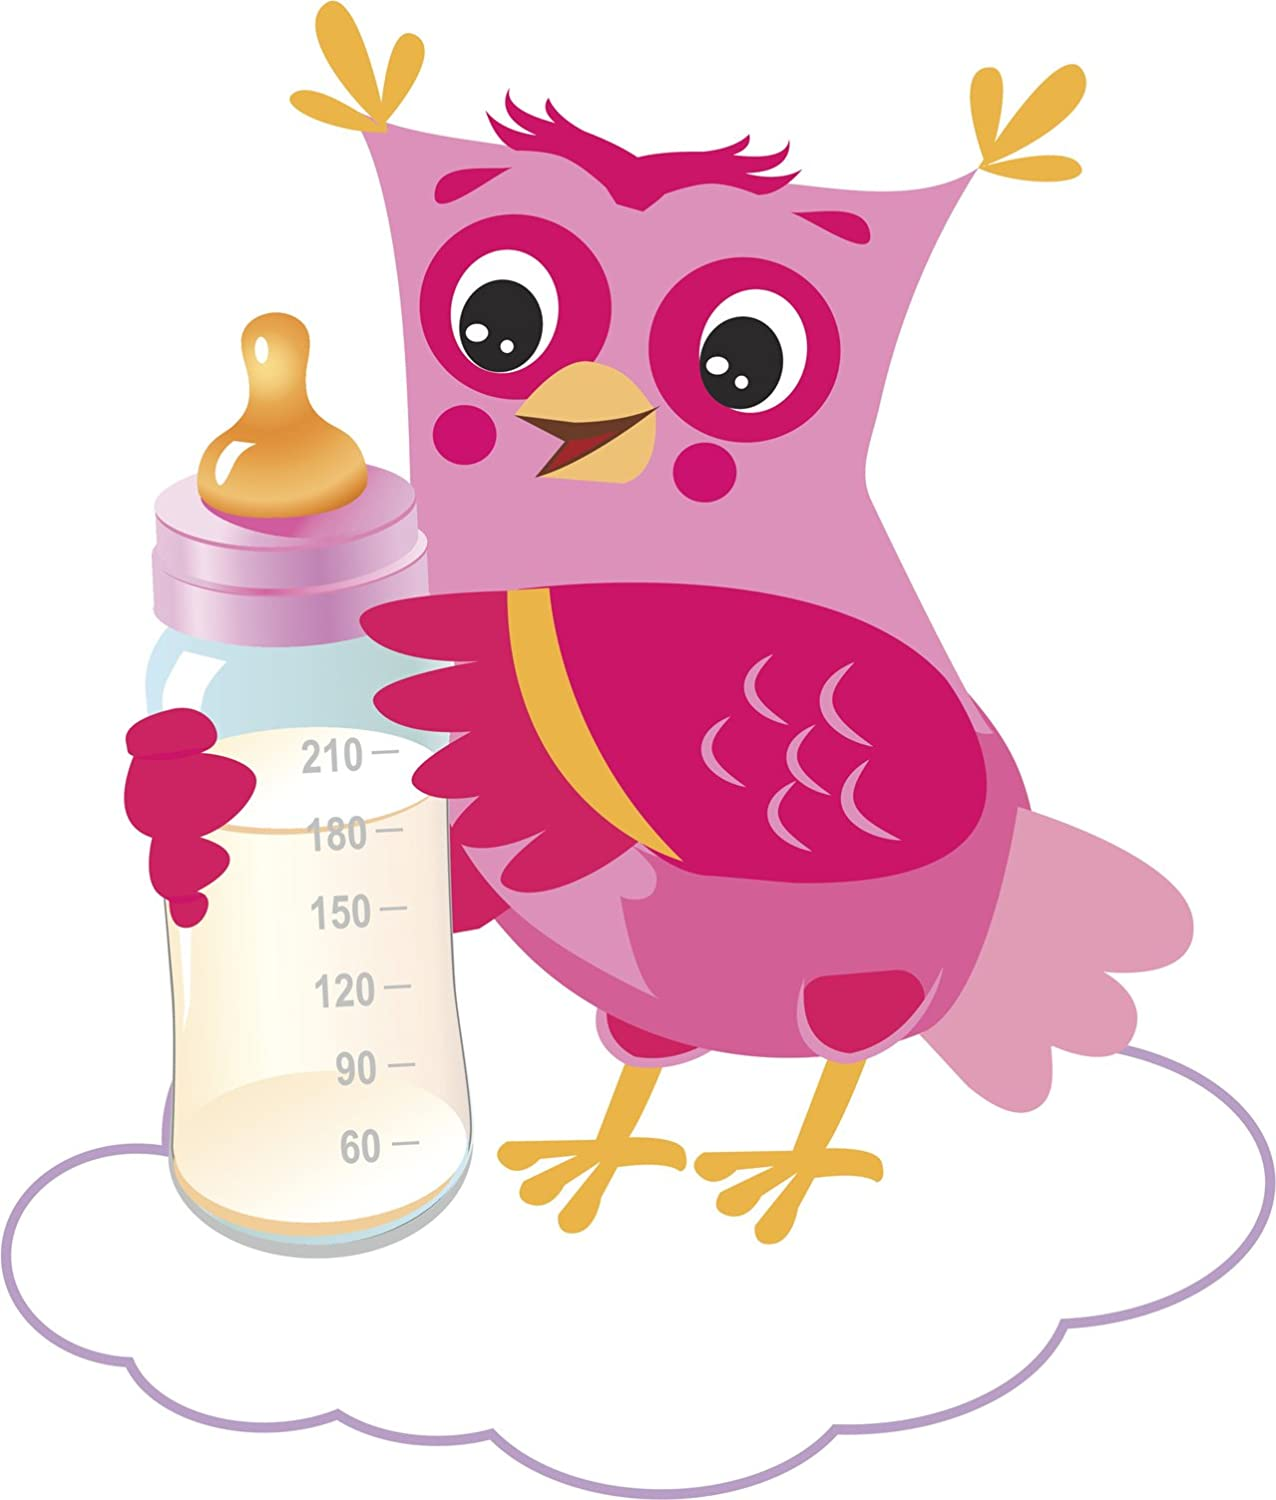 30+ Cute Baby Bottle Cartoon Images